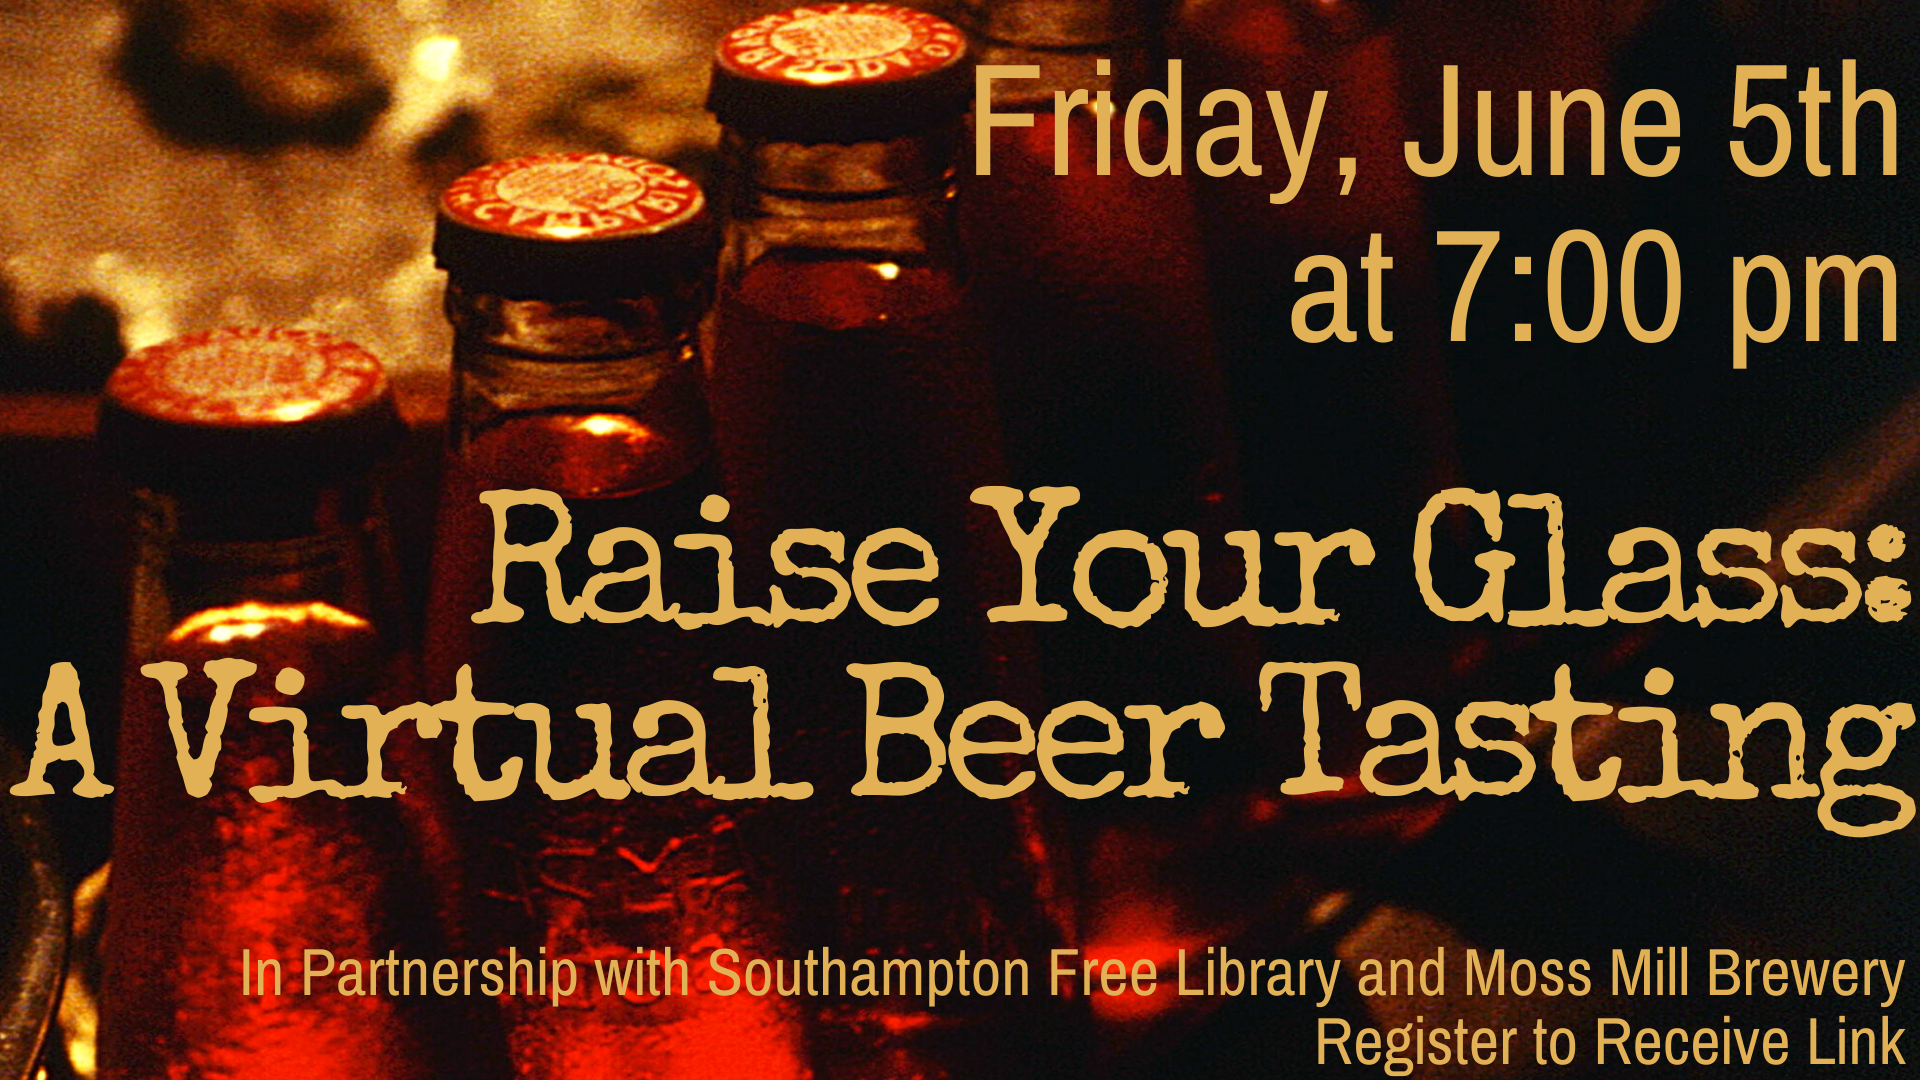 Raise Your Glass: A Virtual Beer Tasting